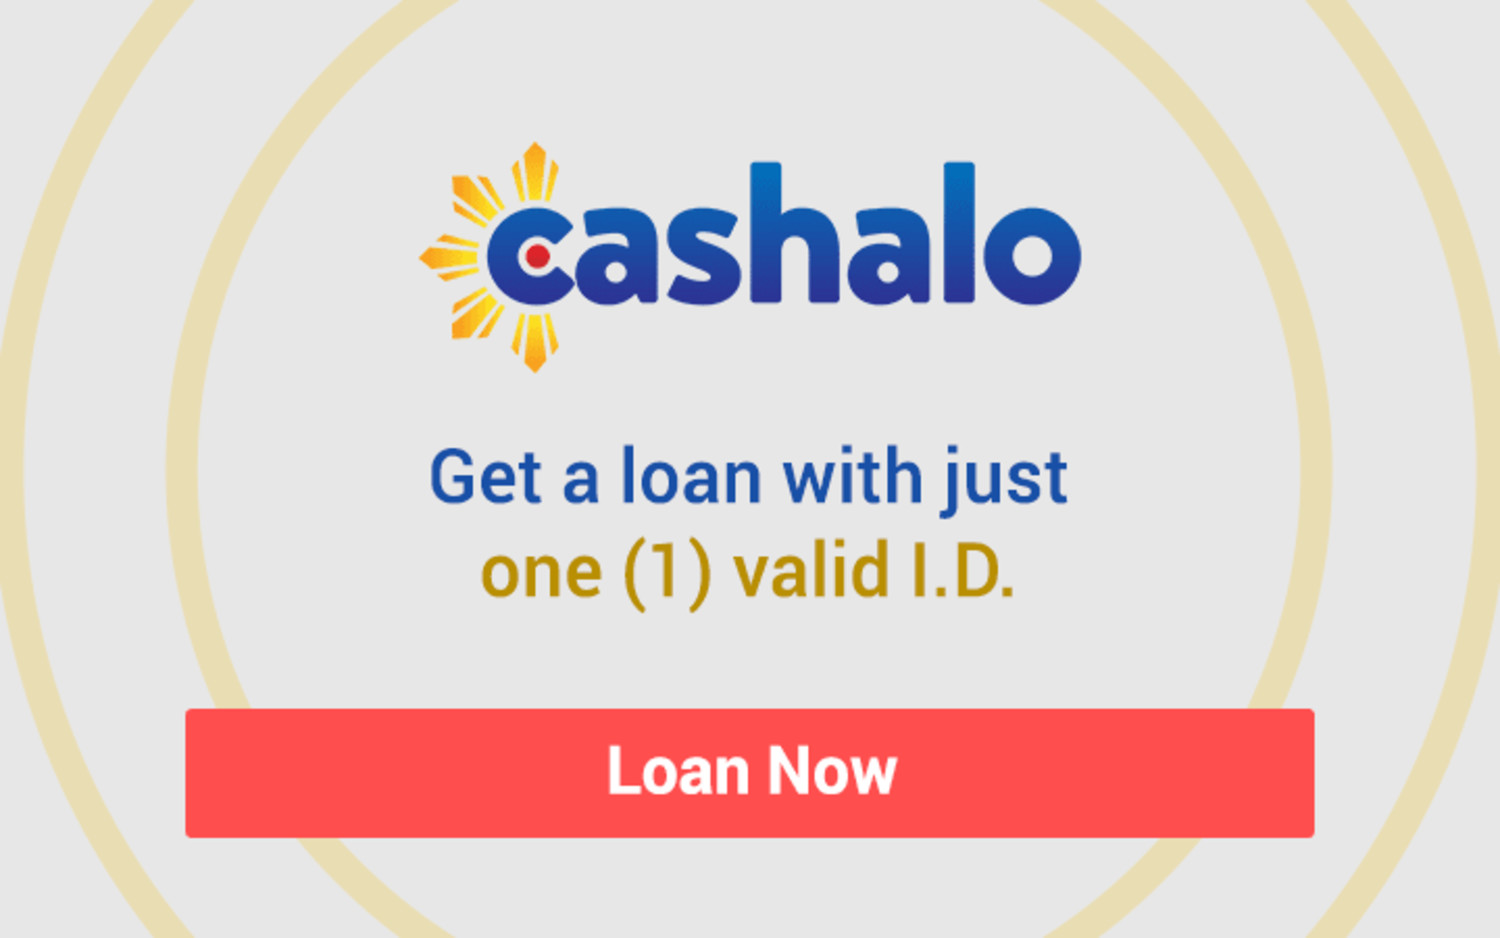 Cashalo: Borrow Money Online - Easy and Hassle-free money lending | ShopBack